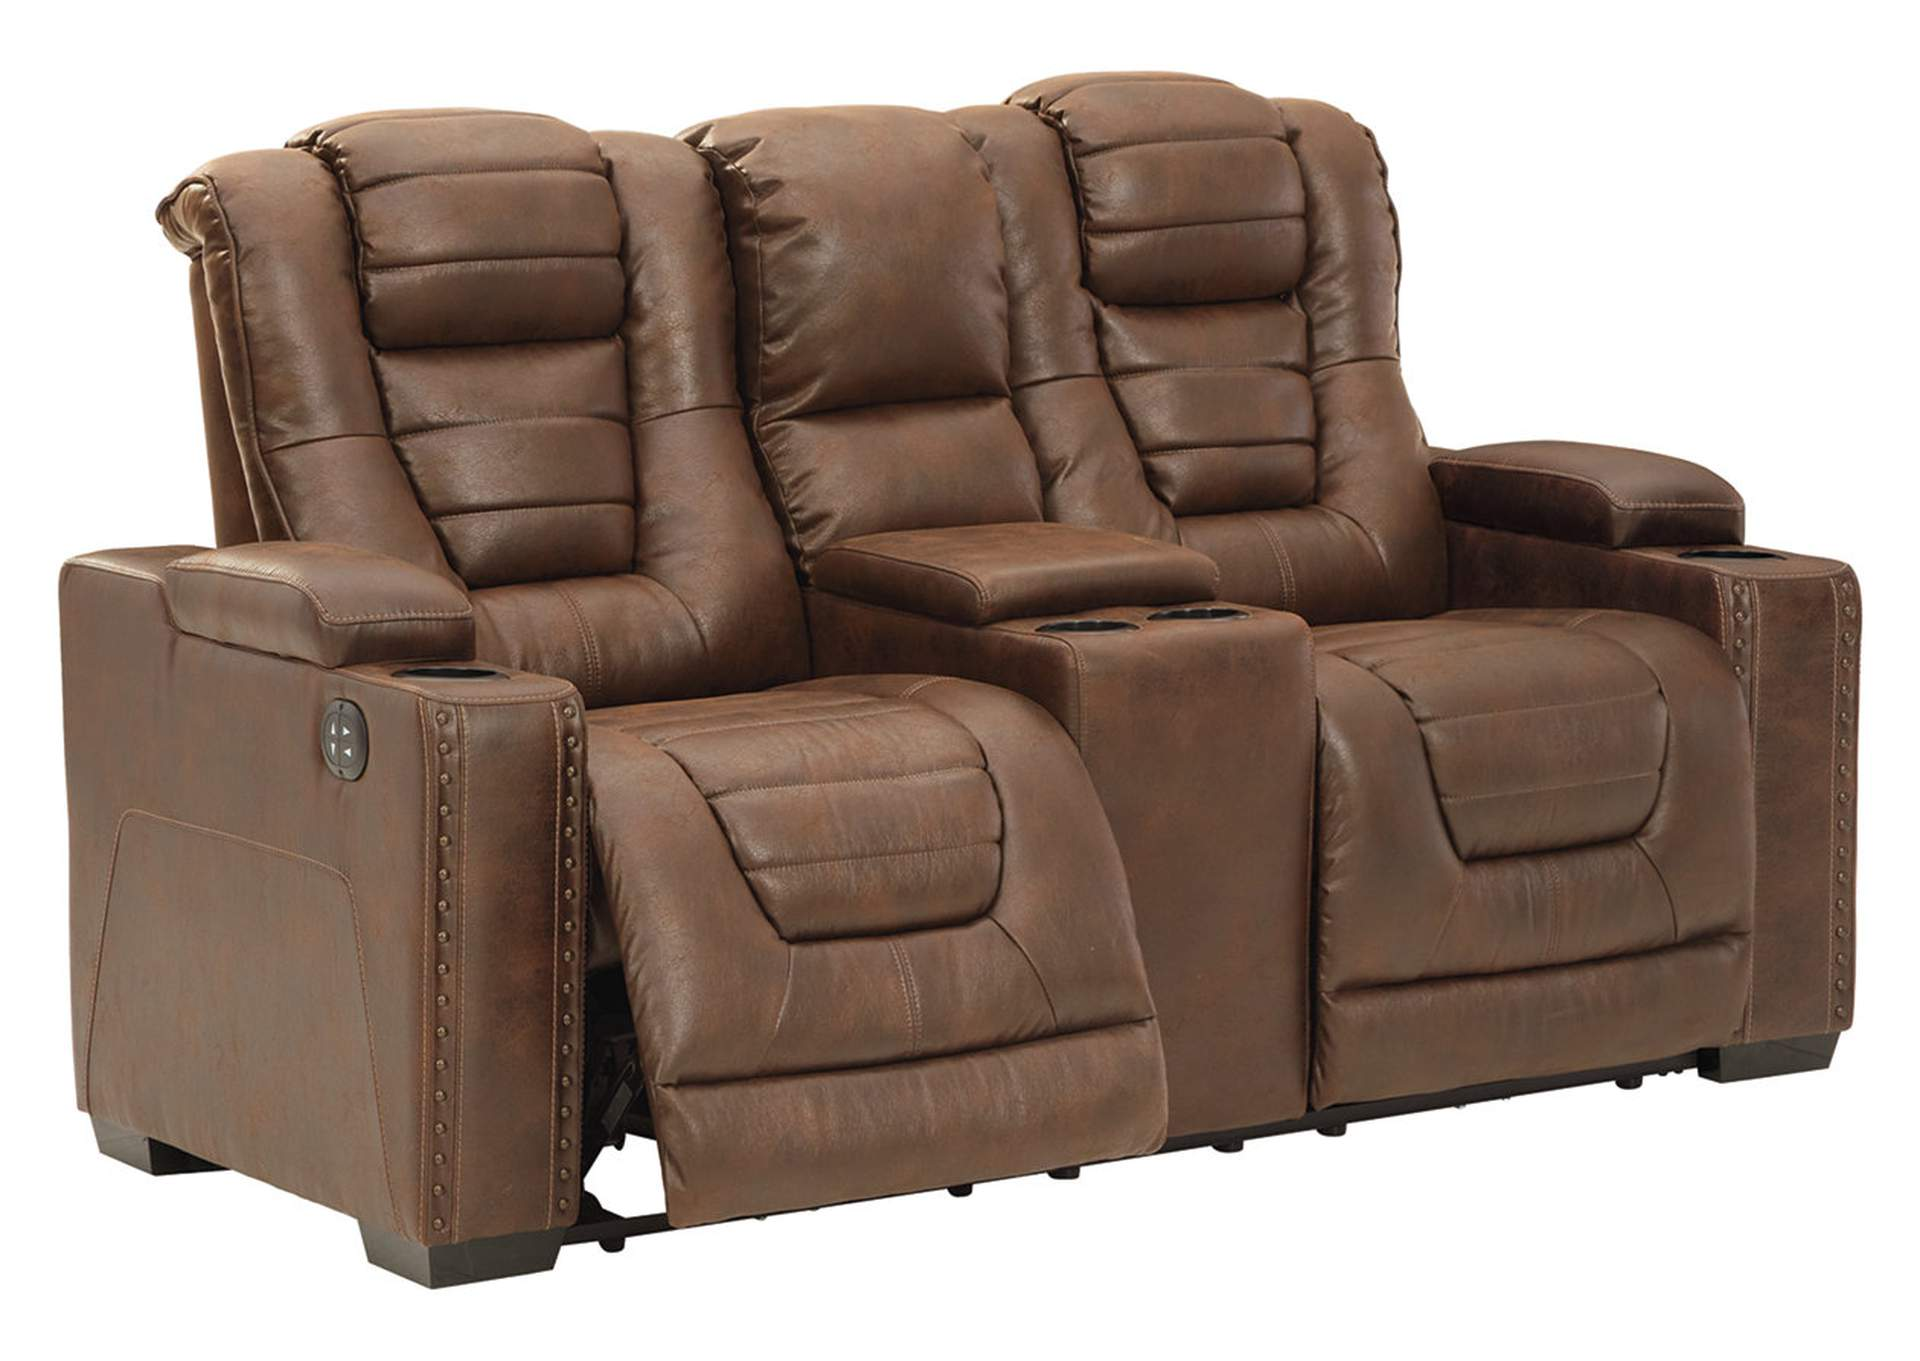 Owner's Box Power Reclining Loveseat with Console,Signature Design By Ashley